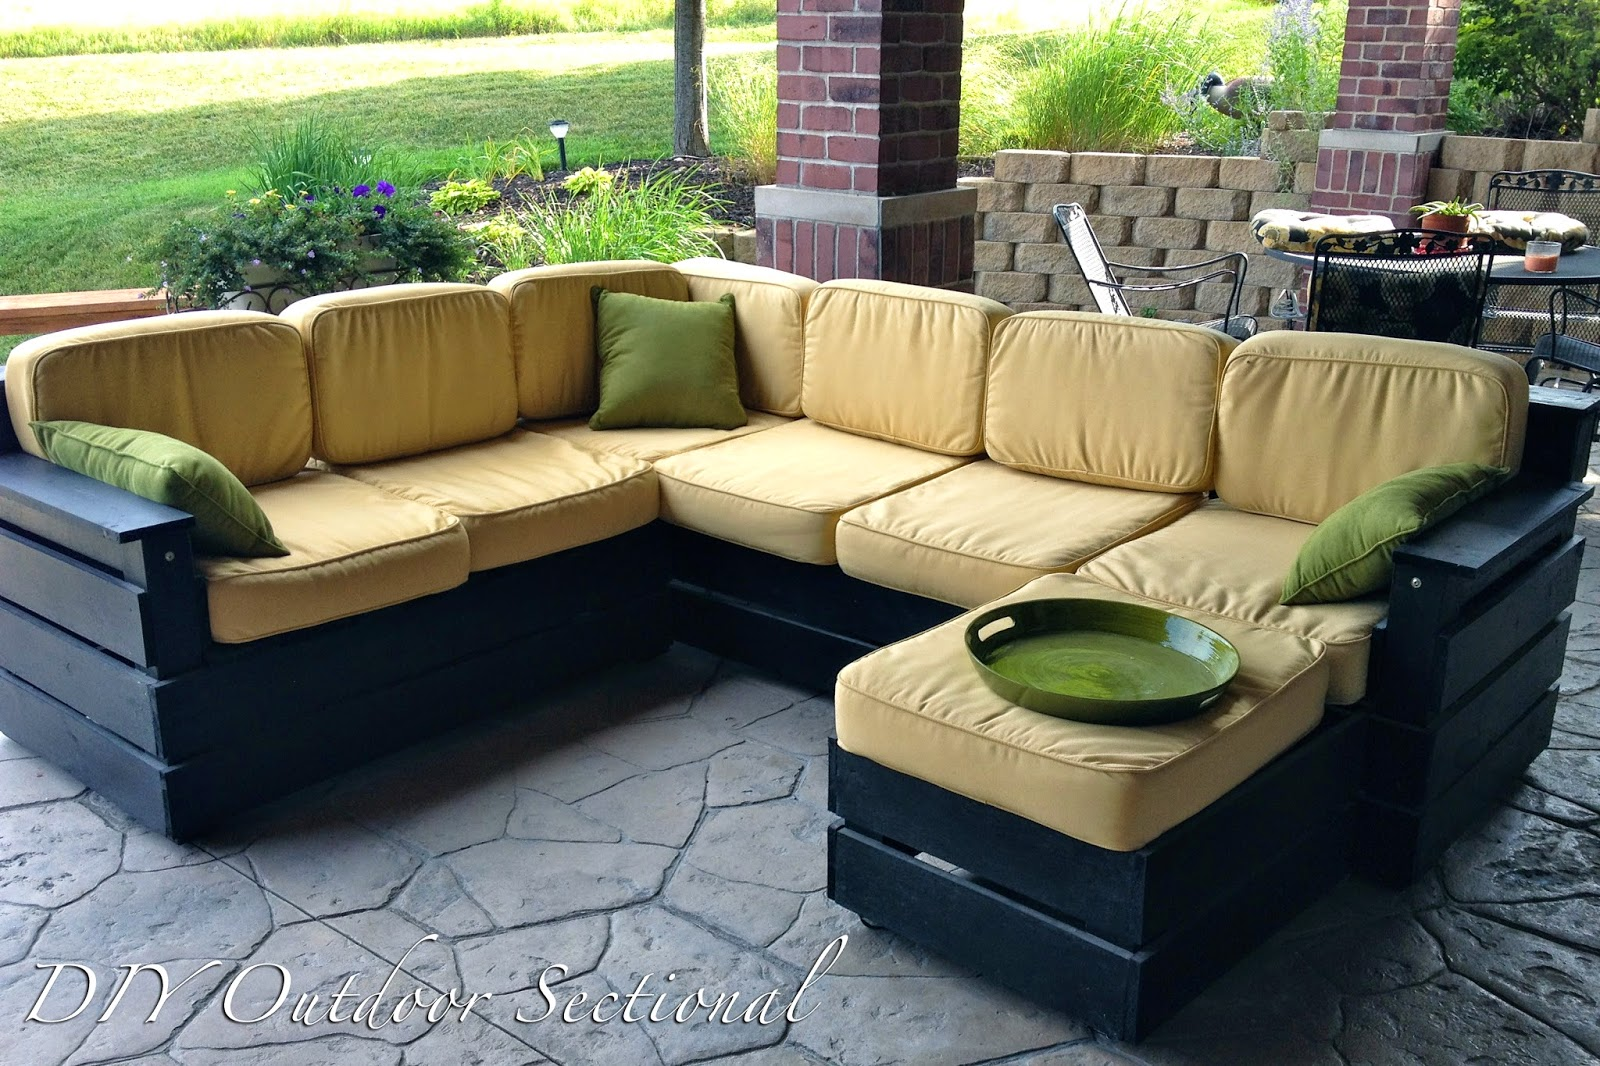 Diy why spend more diy outdoor sectional for Outdoor sofa plans